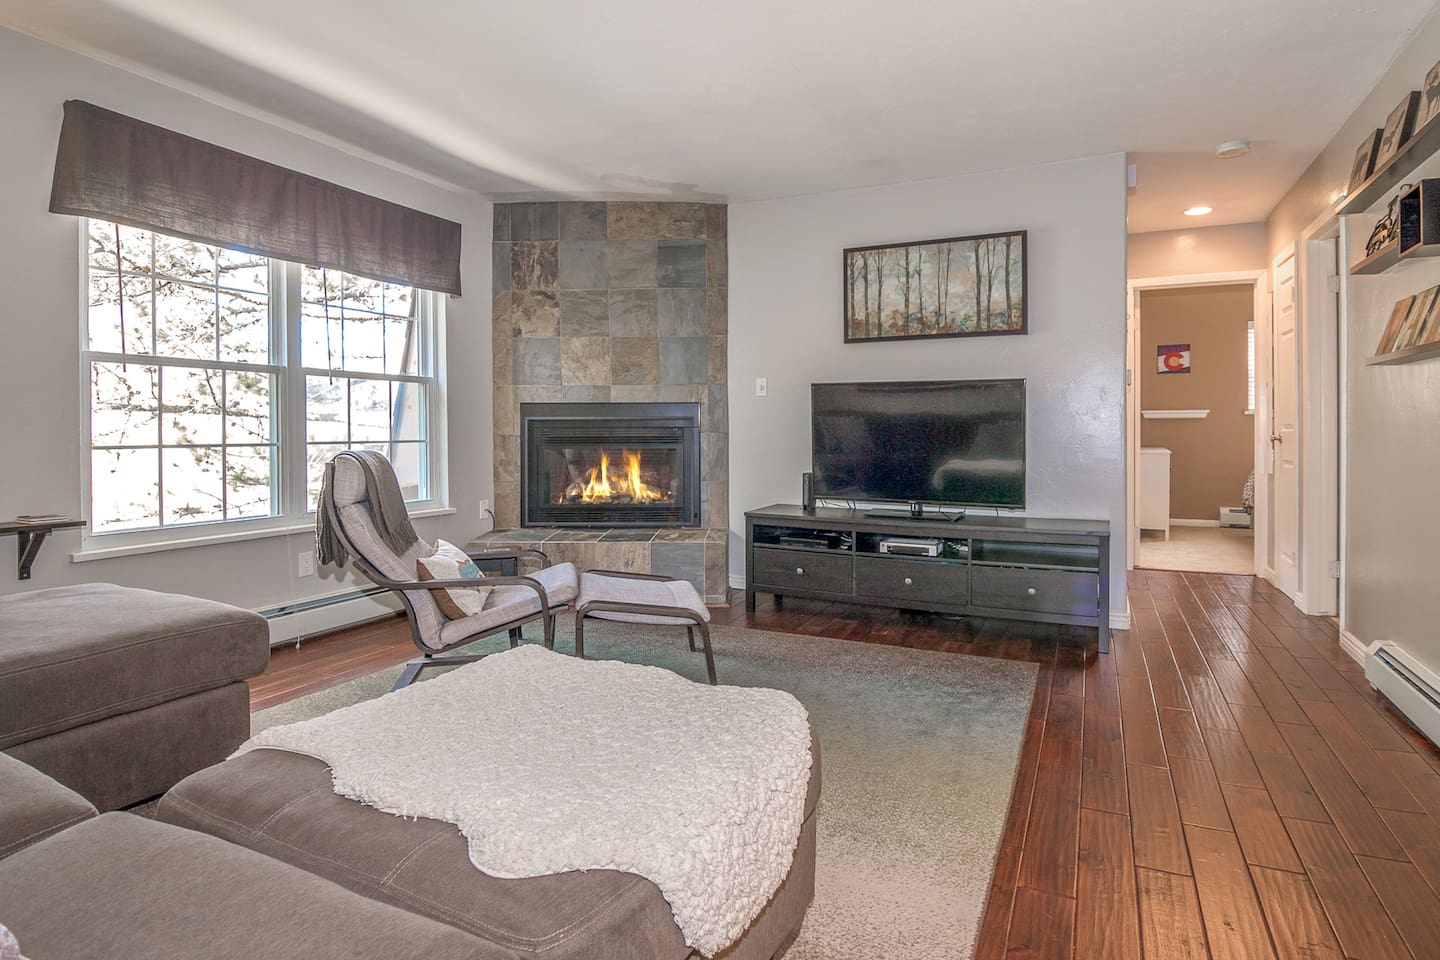 Welcome to Vail! This condo is professionally managed by TurnKey Vacation Rentals.